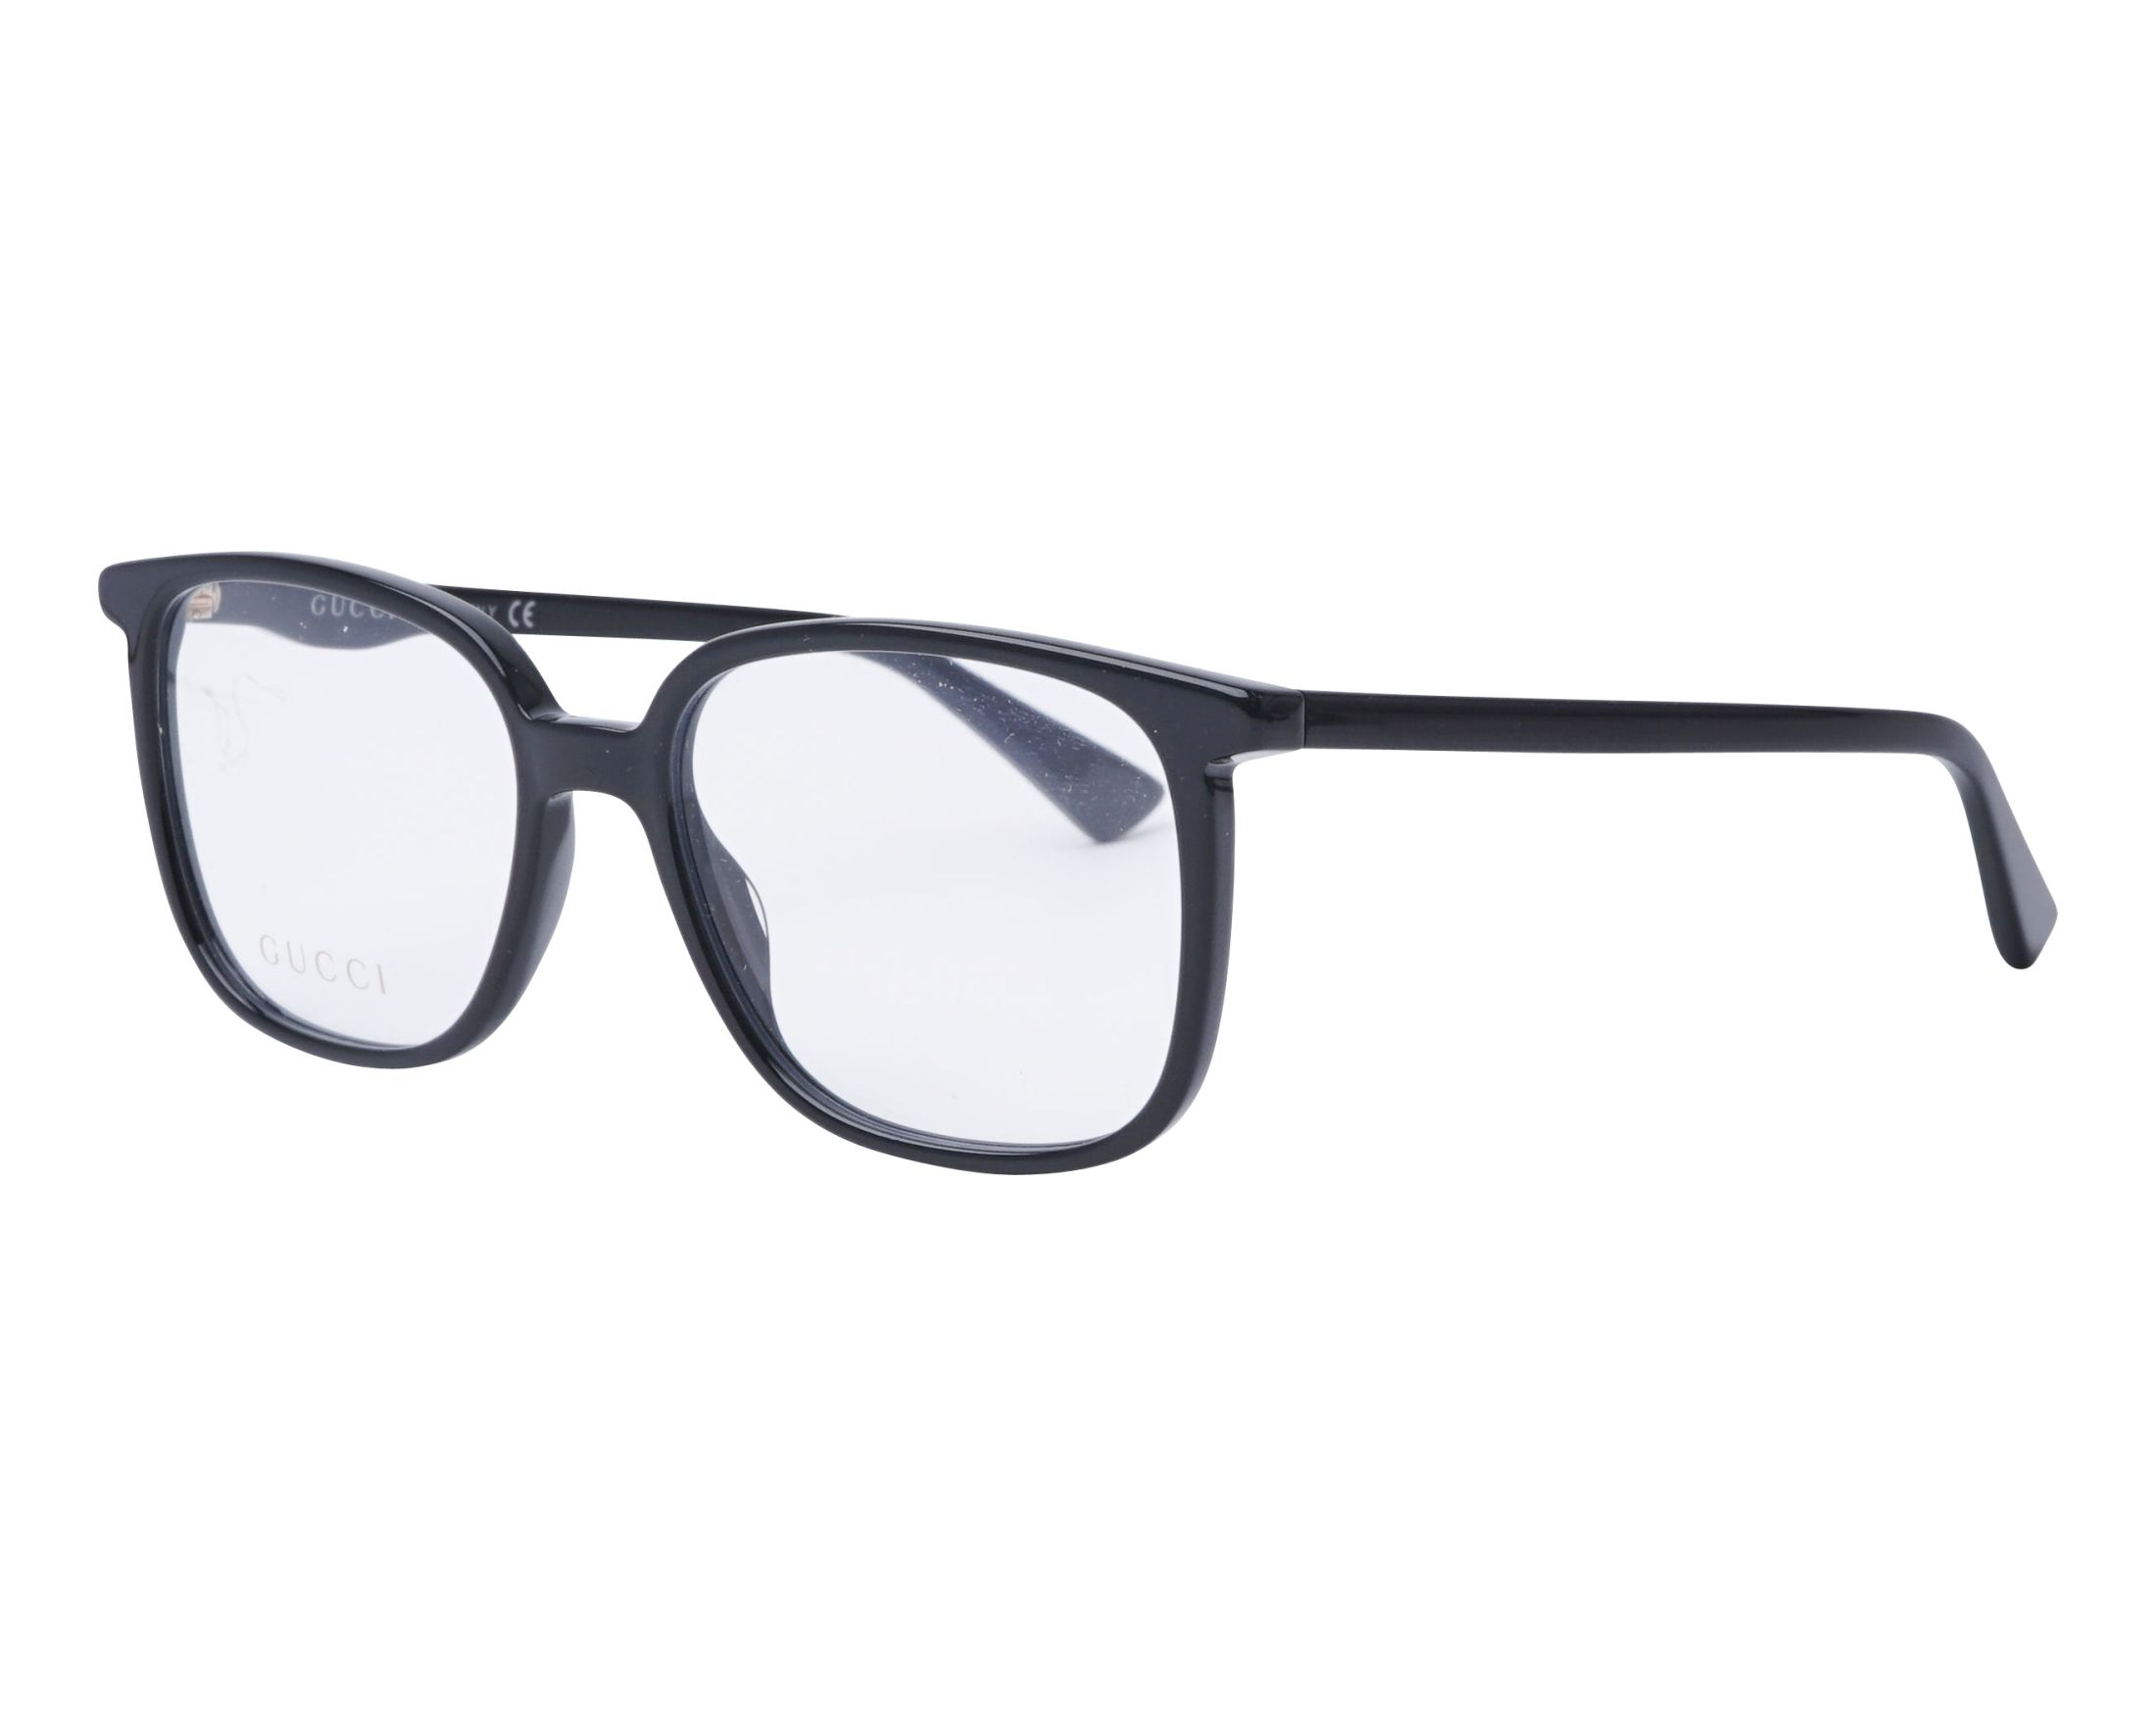 7cce24c2ffc eyeglasses Gucci GG-0260-O 001 53-17 Black profile view